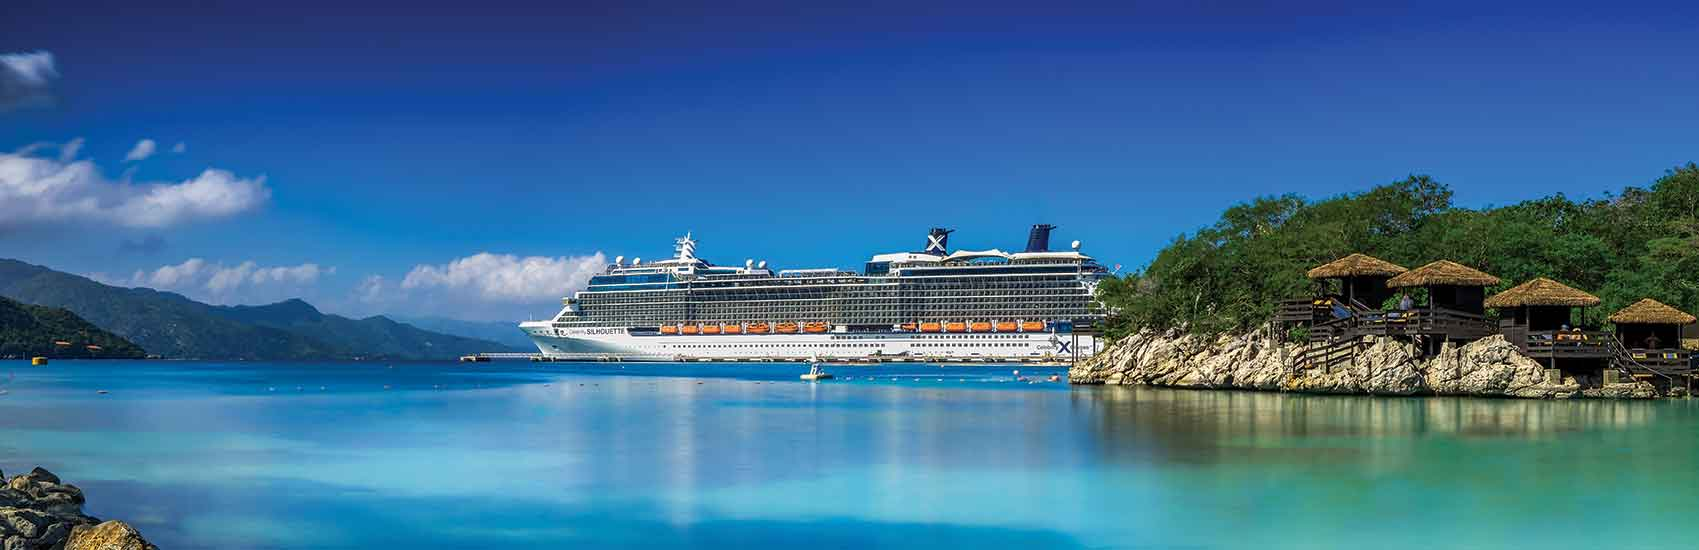 Exclusive Caribbean Cruise Offer with Celebrity